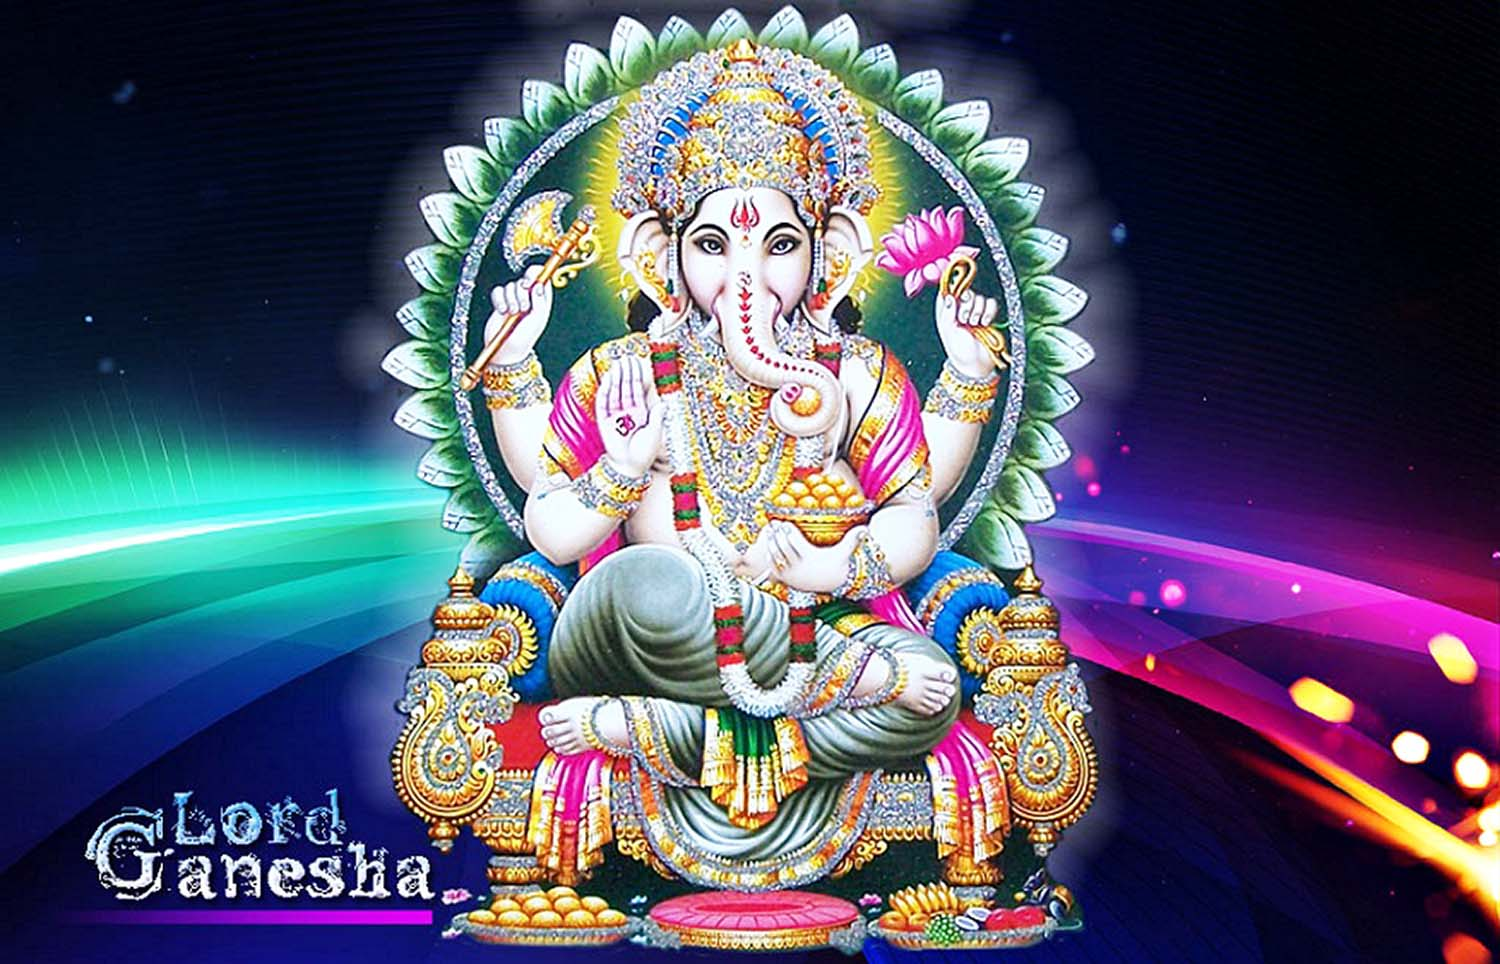 Giant Hd photo of Ganesh ji!